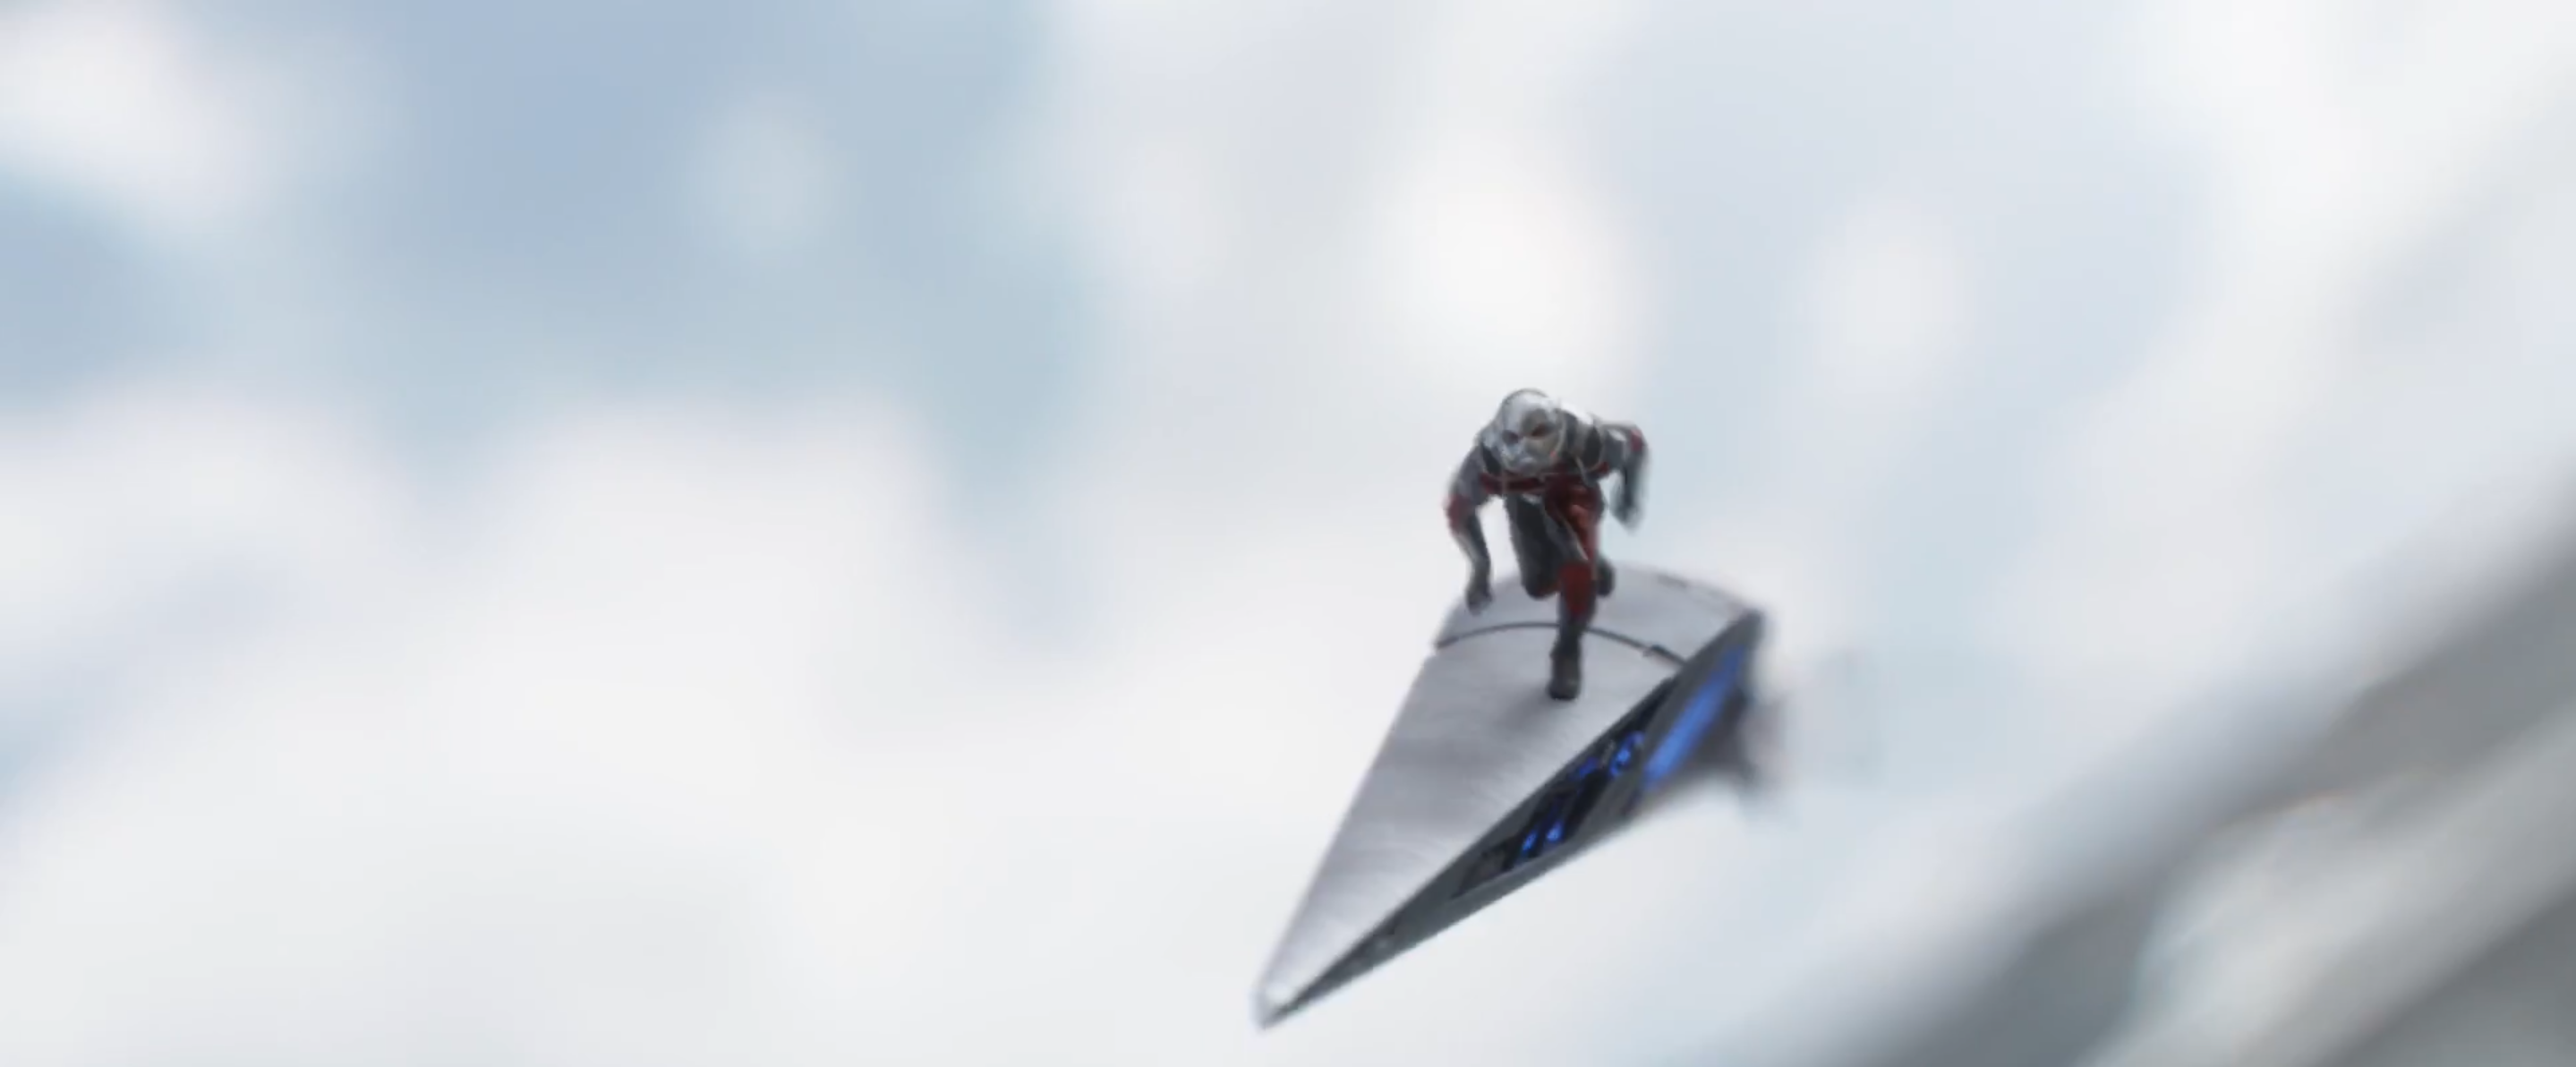 Captain America: Civil War: Ant-Man nel trailer 2 del film